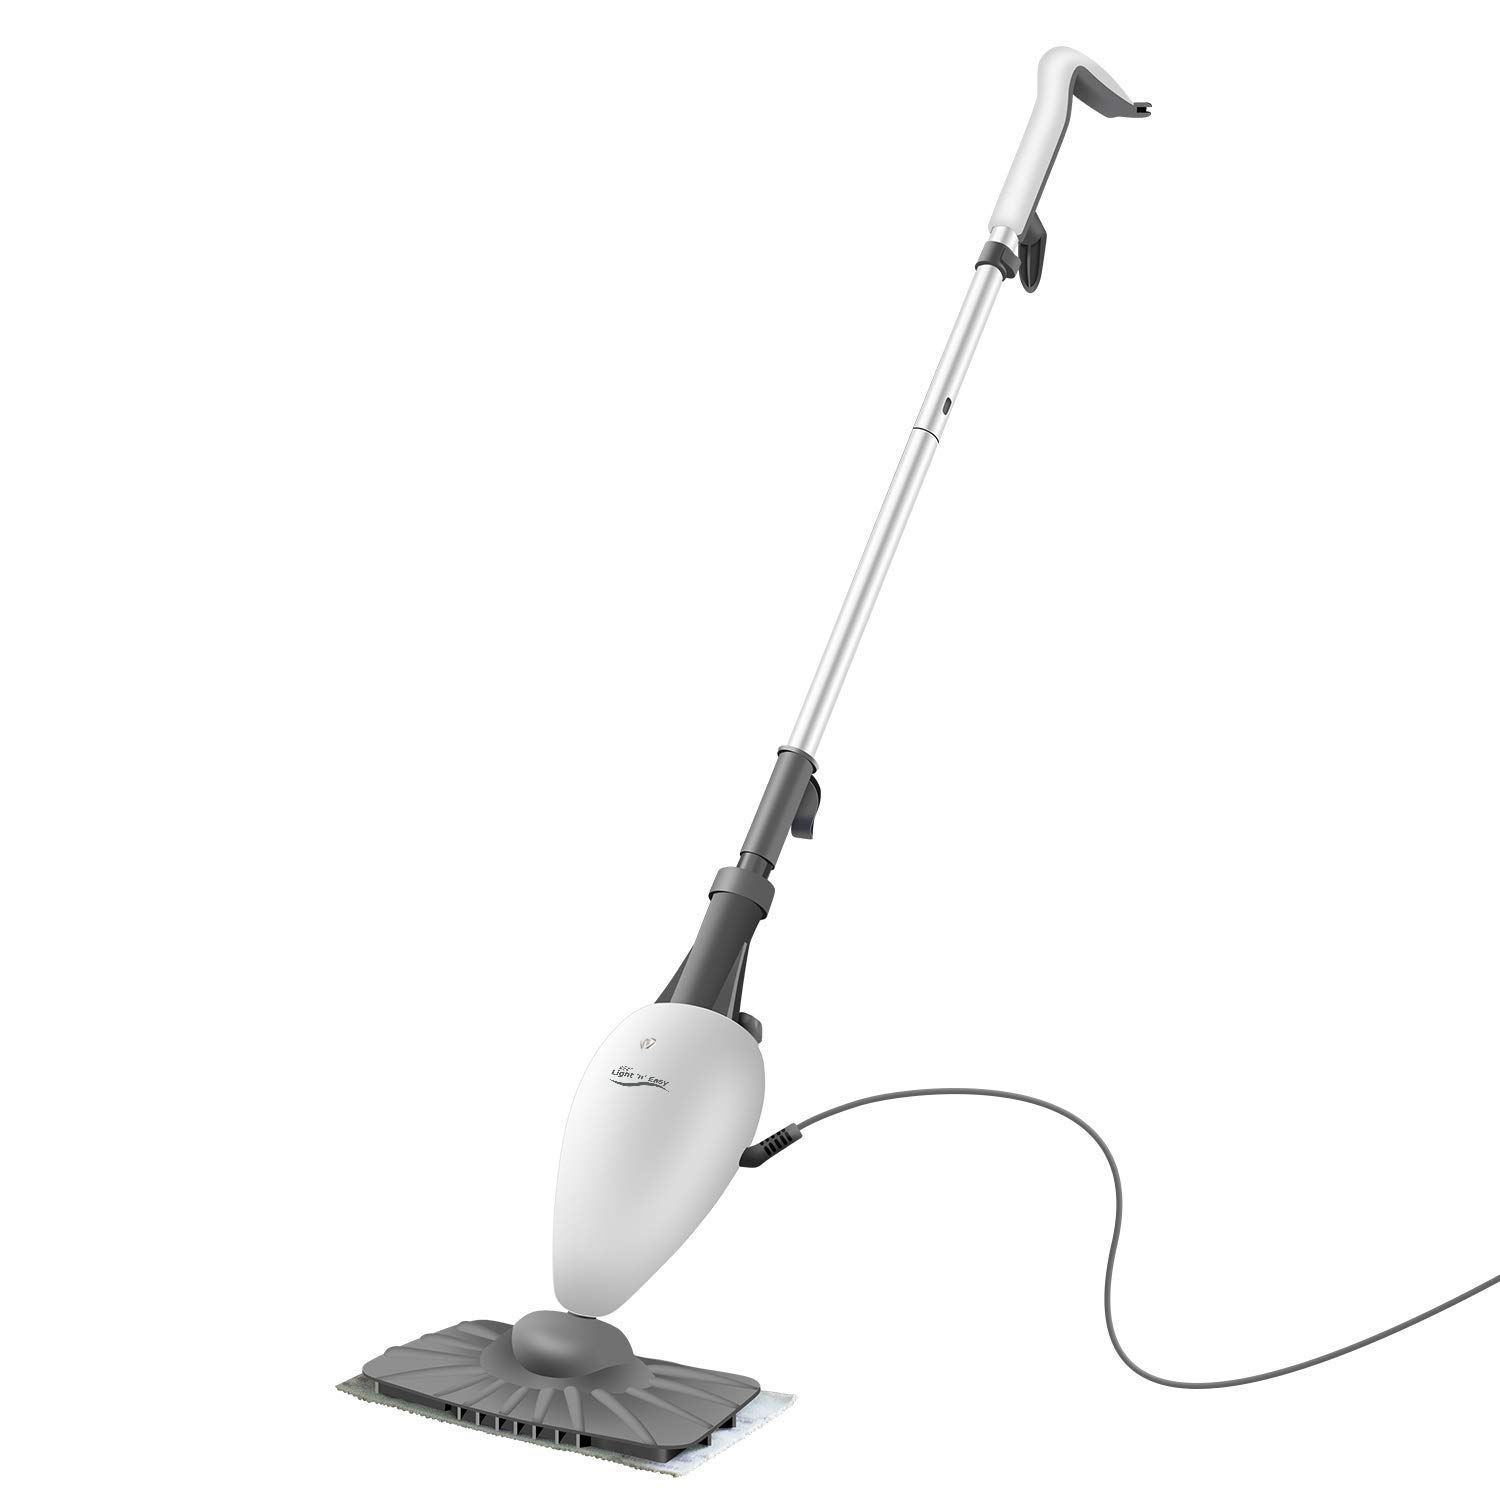 LIGHT 'N' EASY Steam Mop Floor Steamer for Cleaning with Swiveling Steamer Mop Head for Tile,Grout,Laminate,Hardwood,Carpet Steamer,Professional 5 in 1 Steam Mops Steamer Cleaner